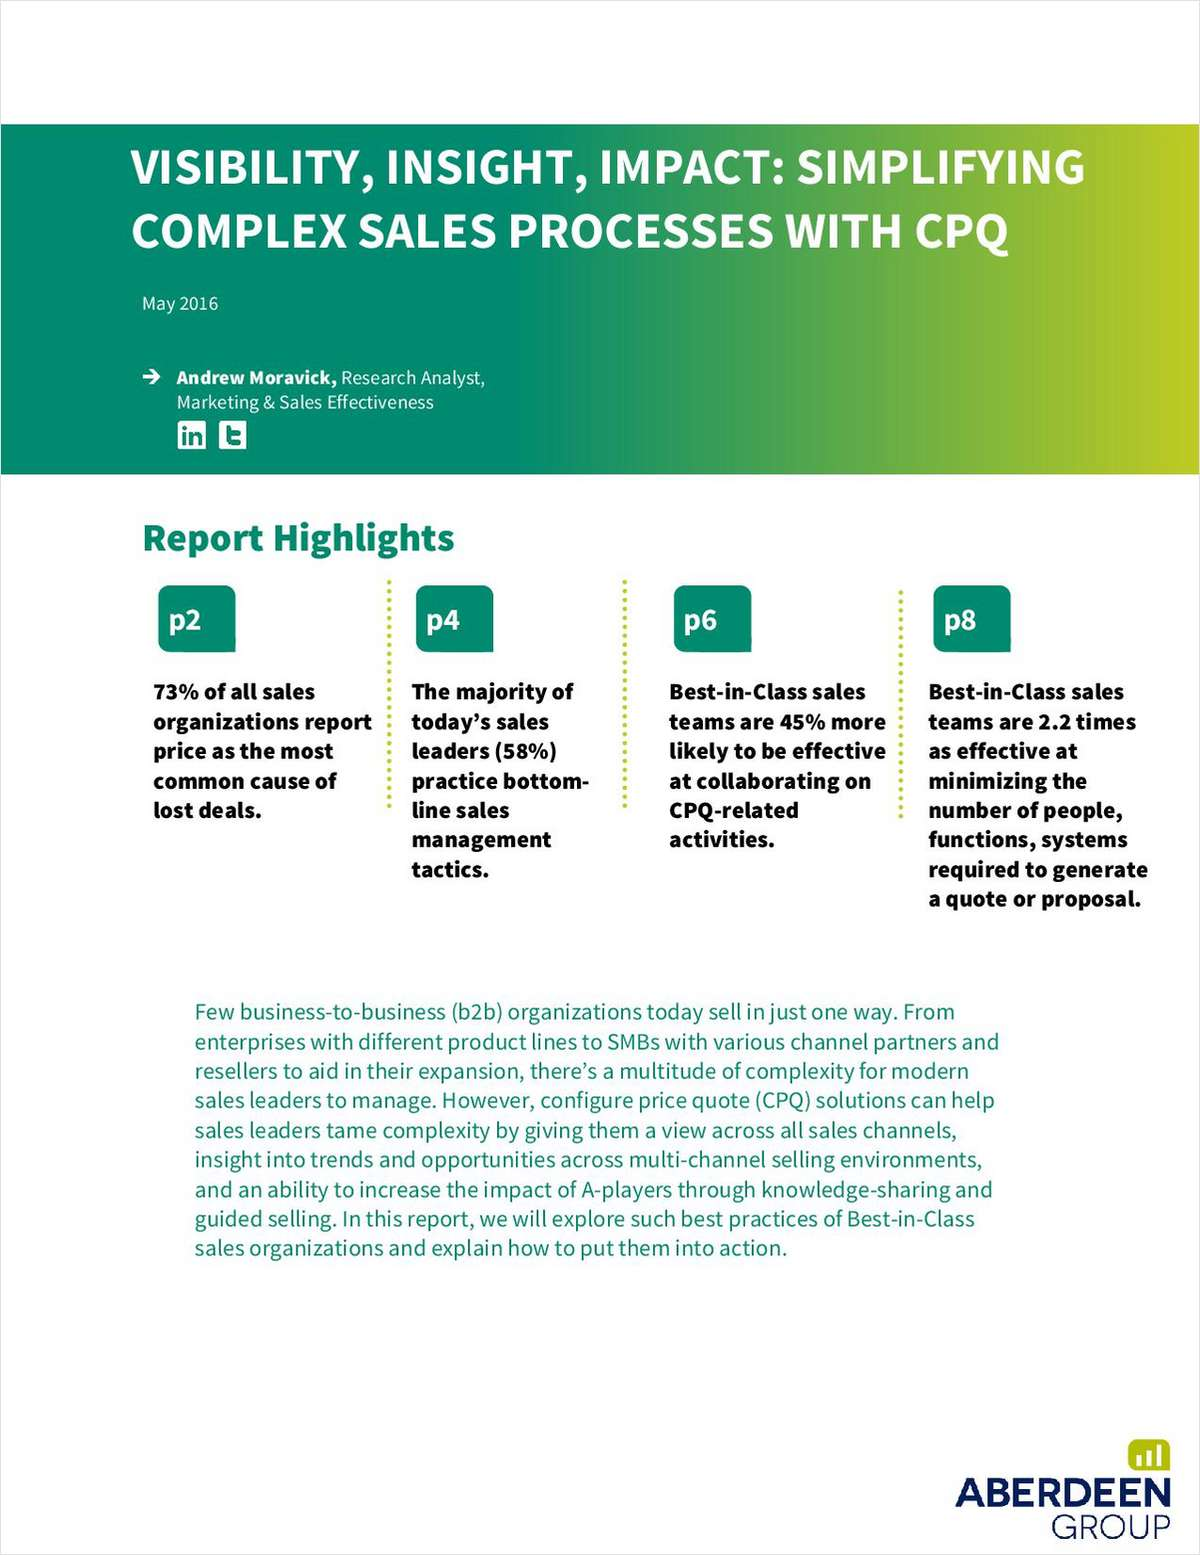 Aberdeen Report: Simplifying Complex Sales Processes with CPQ